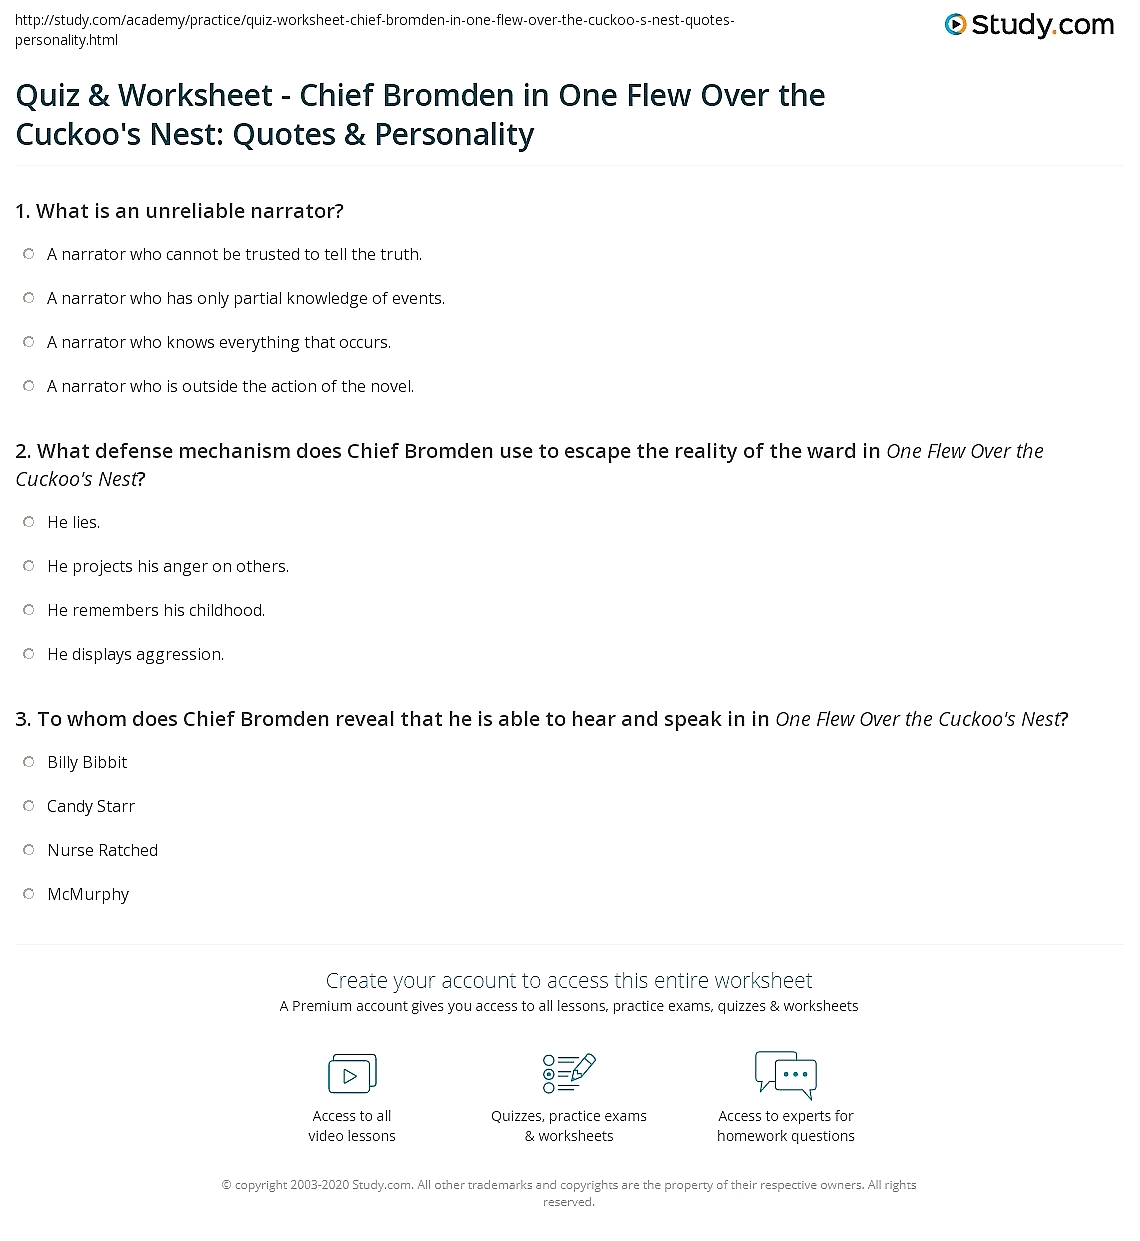 Worksheets Defense Mechanisms Worksheet quotes about defense mechanisms worksheets math picture quiz worksheetchief bromden in one flew over the cuckoos what defense